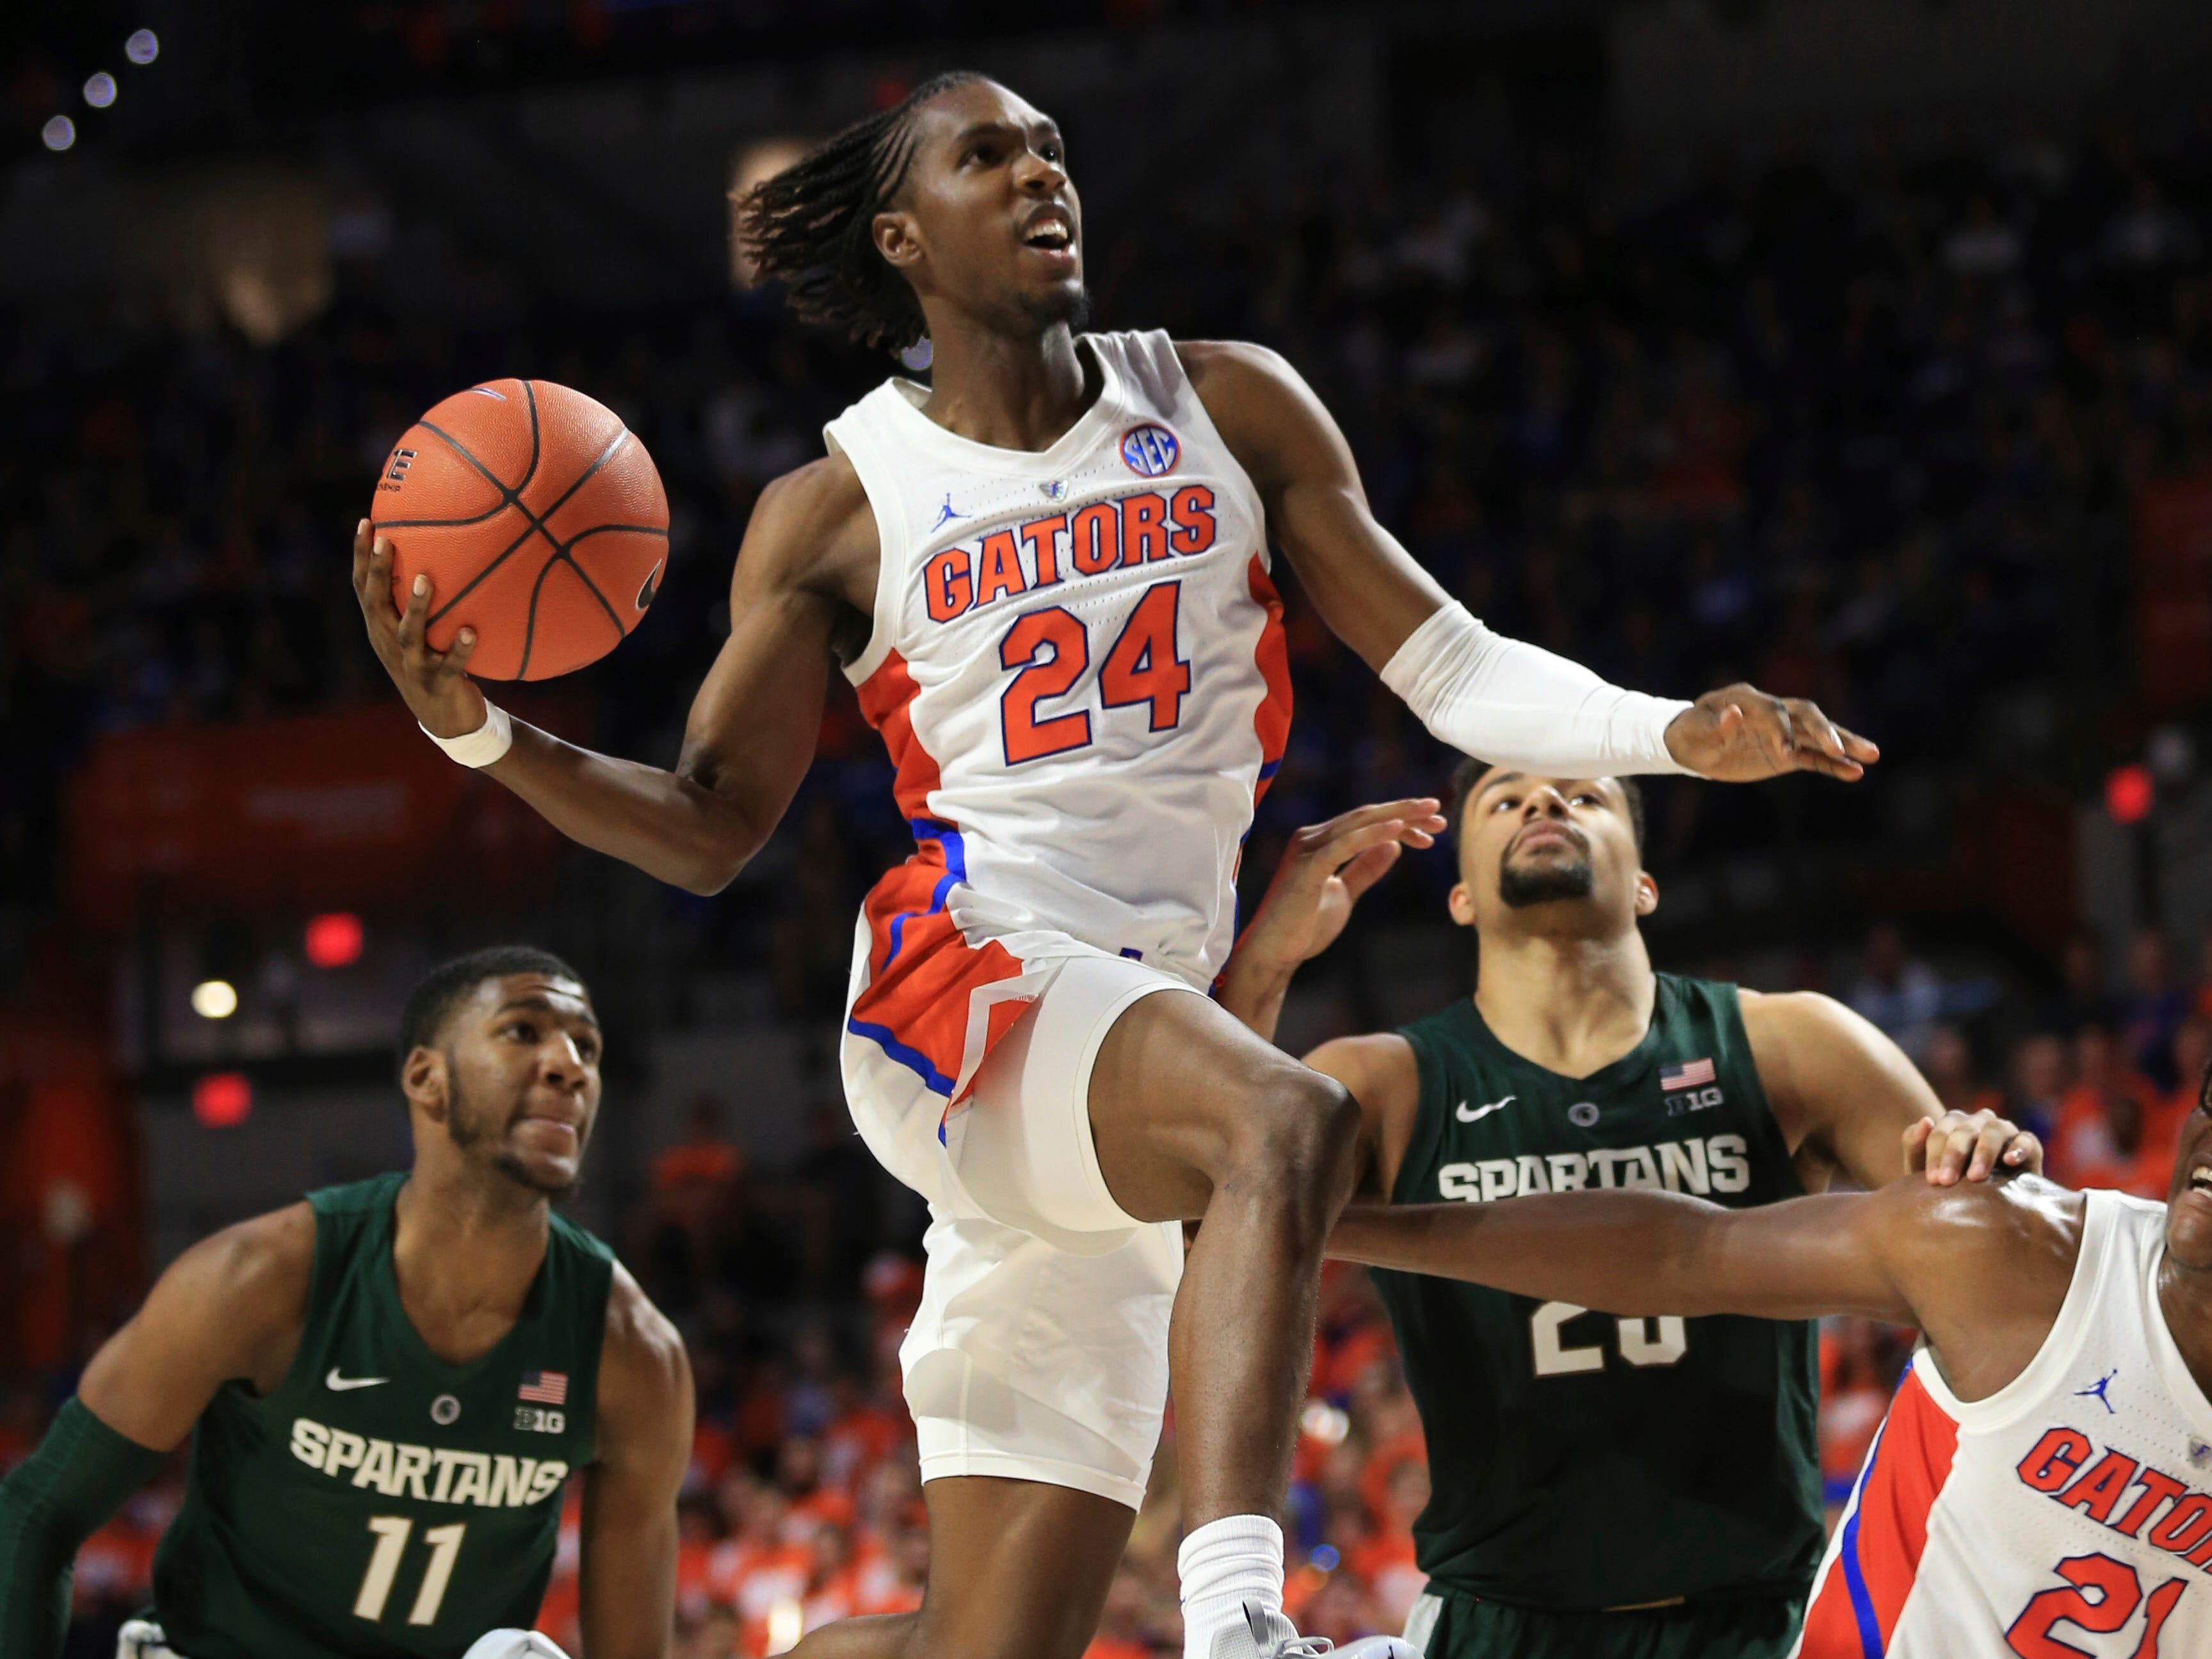 Florida guard Deaundrae Ballard (24) goes up for a shot past Michigan State forward Xavier Tillman (23) and forward Aaron Henry (11) during the second half.